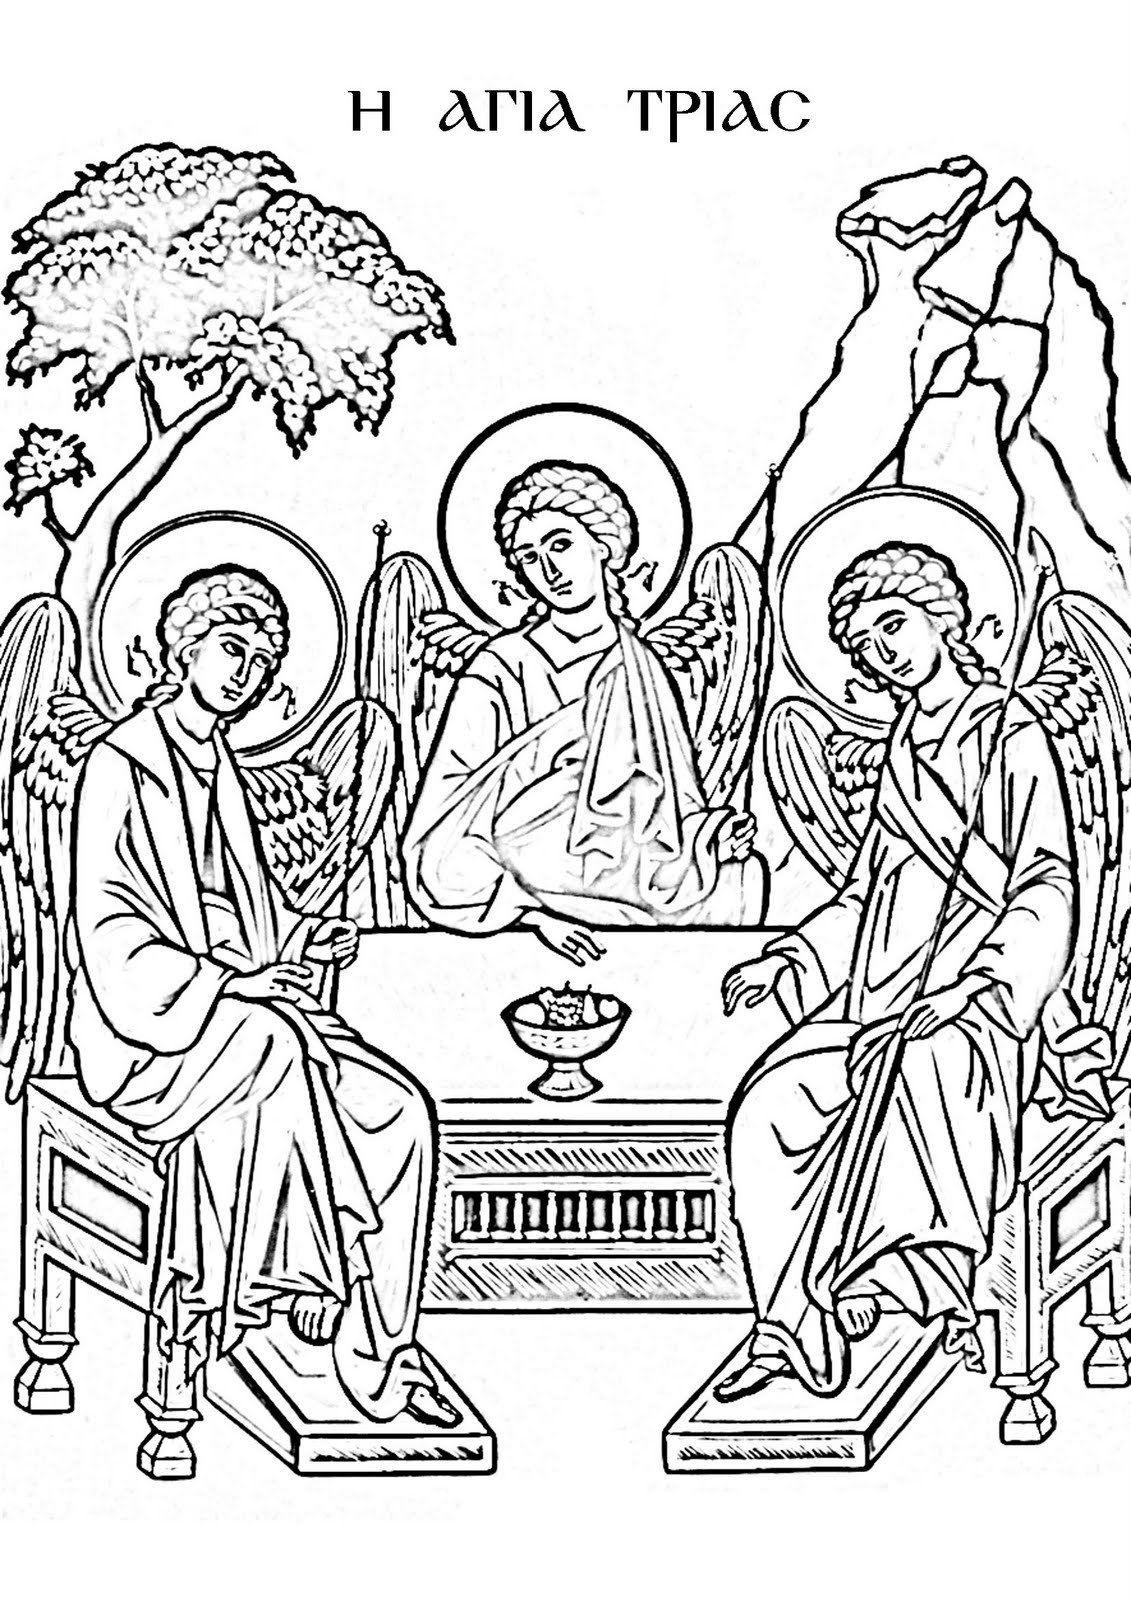 Coloring Page The Holy Trinity In 2020 Coloring Pages